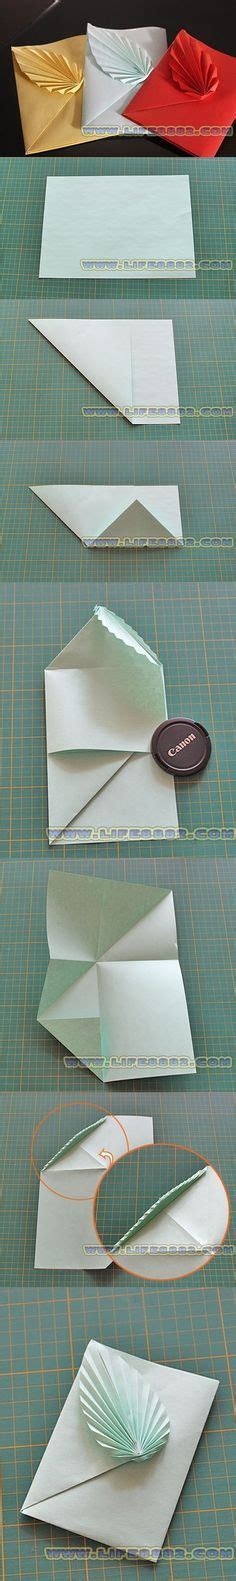 tutorial sobre carding fold out heart cards google search birthday cards